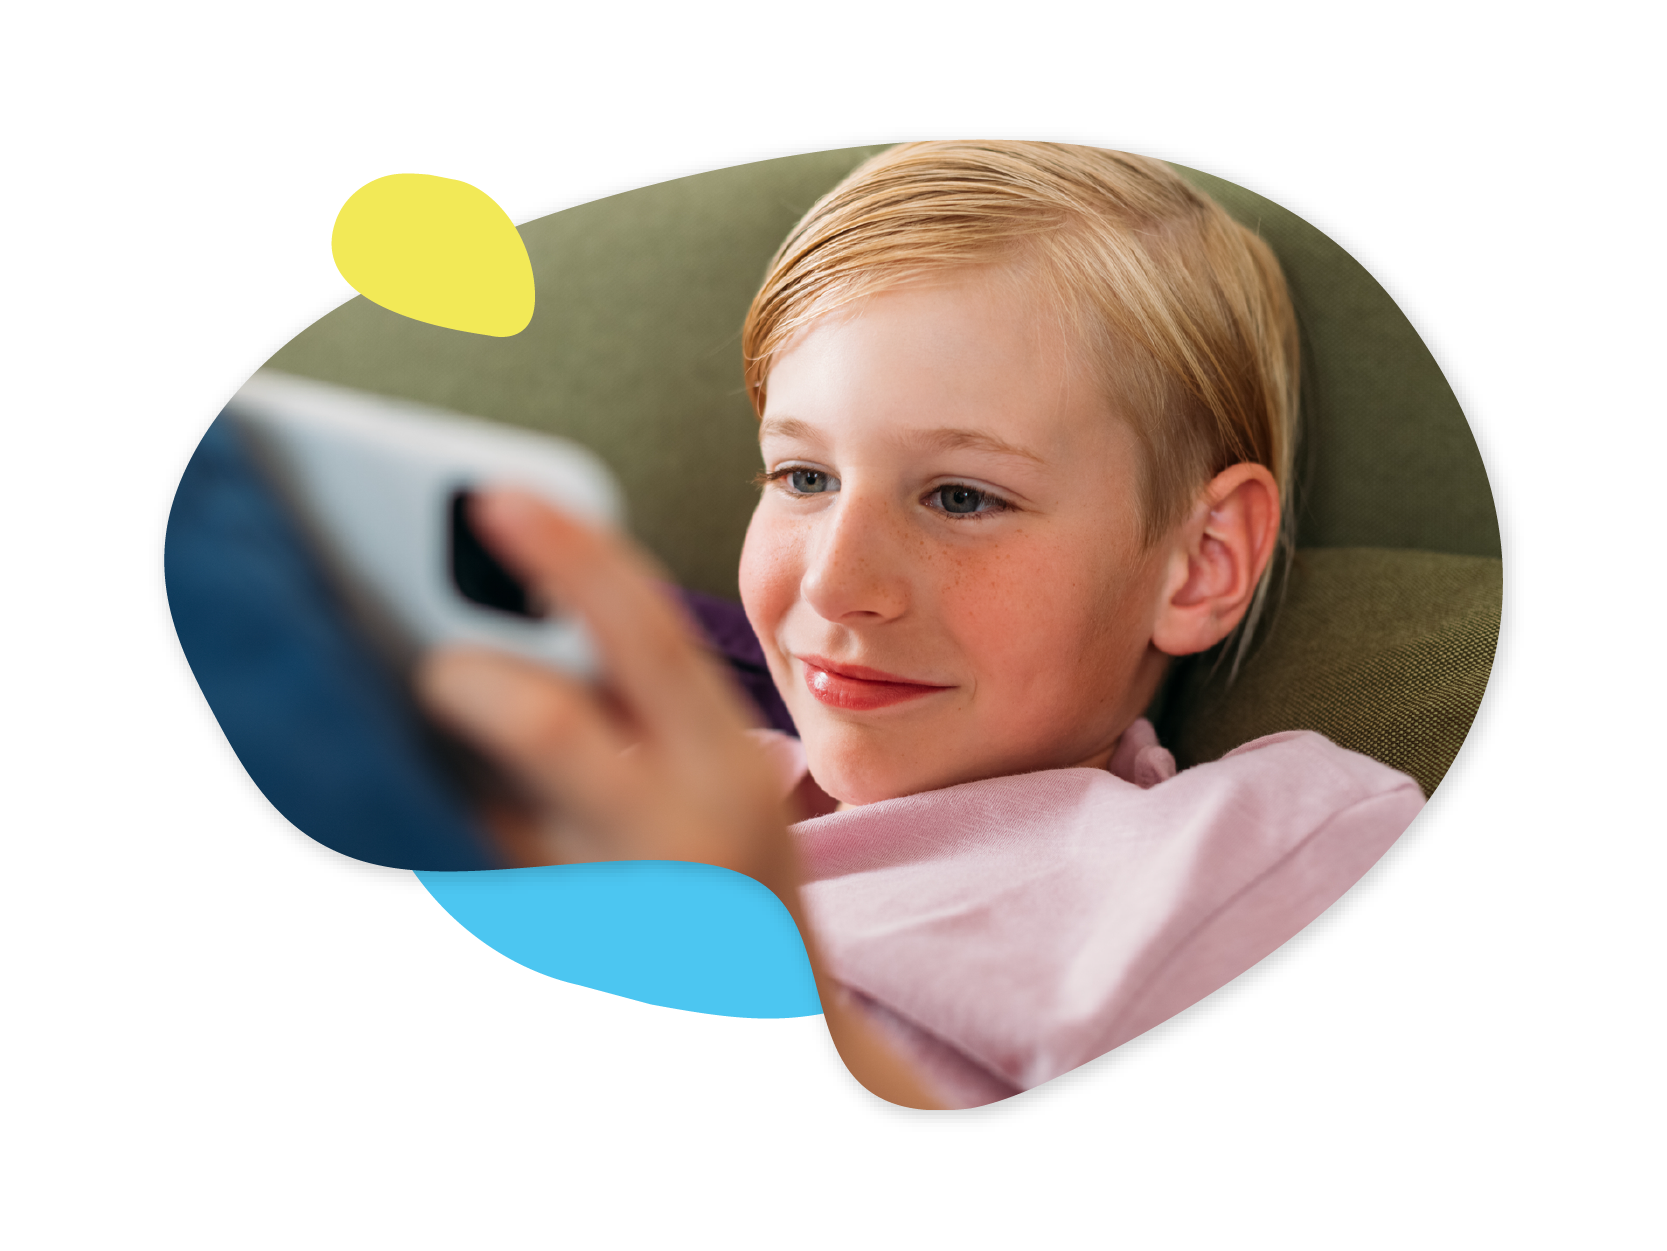 A closeup of a young boy looking at a tablet